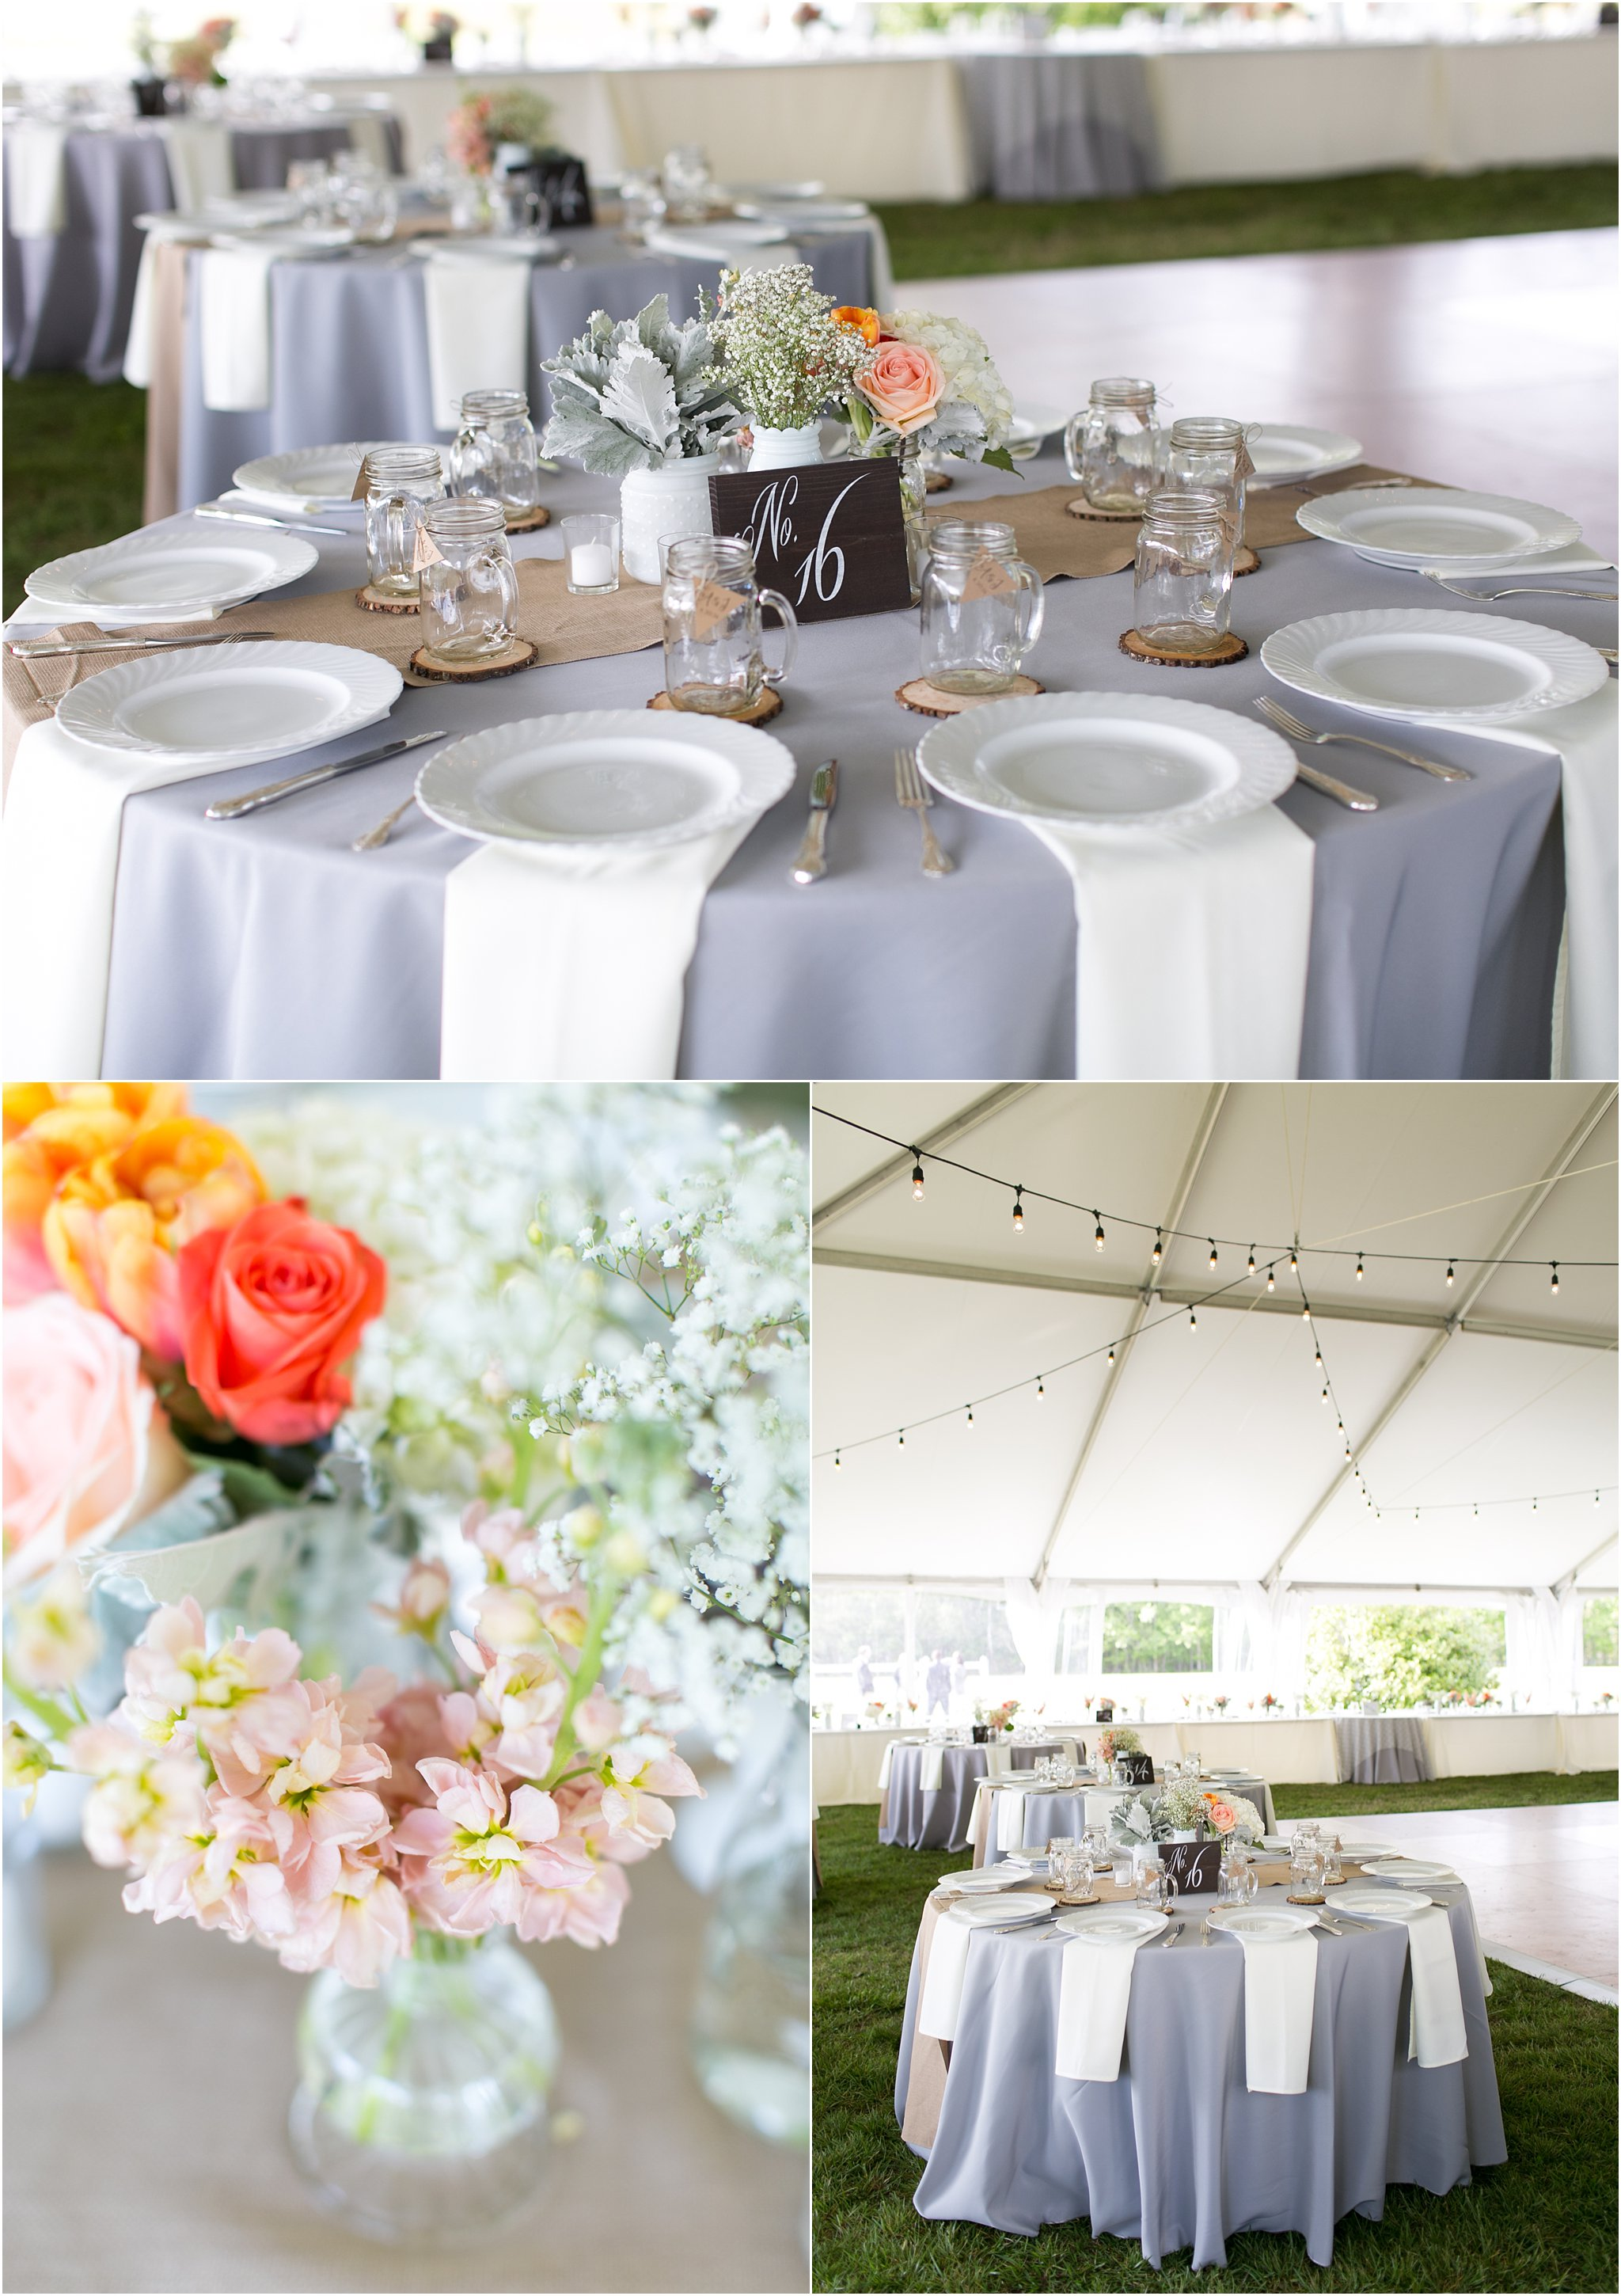 jessica_ryan_photography_holly_ridge_manor_wedding_roost_flowers_jamie_leigh_events_dhalia_edwards_candid_vibrant_wedding_colors_1353